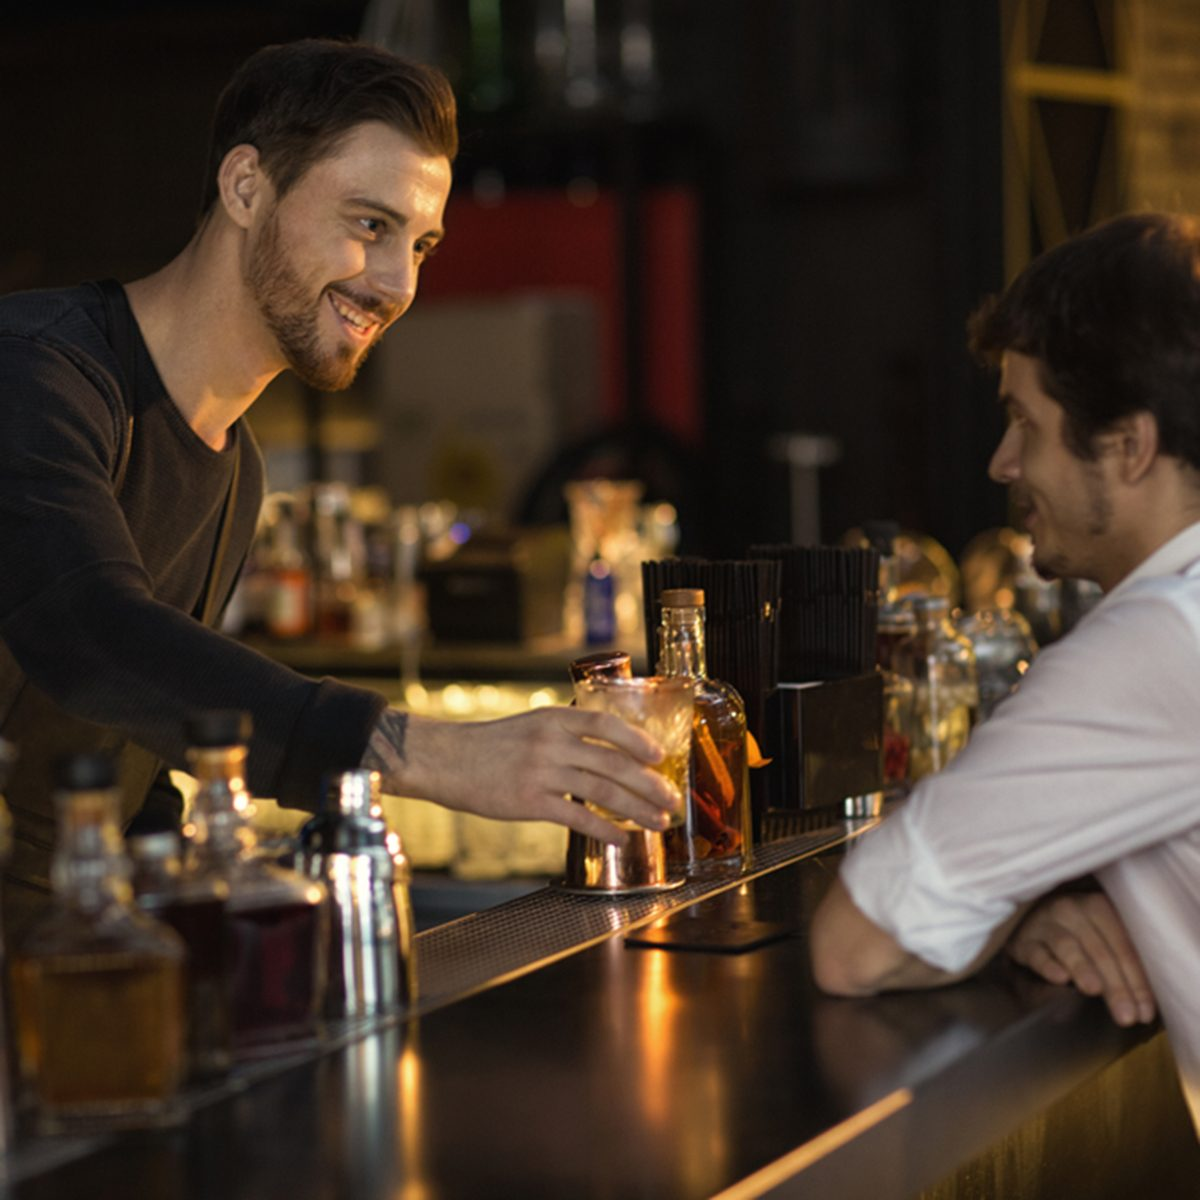 Cheerful male bearded bartender smiling giving his client a drink while working at the bar communication friendly positivity entertainment leisure occupation job luxury lifestyle club weekend service; Shutterstock ID 1010959540; Job (TFH, TOH, RD, BNB, CWM, CM): TOH